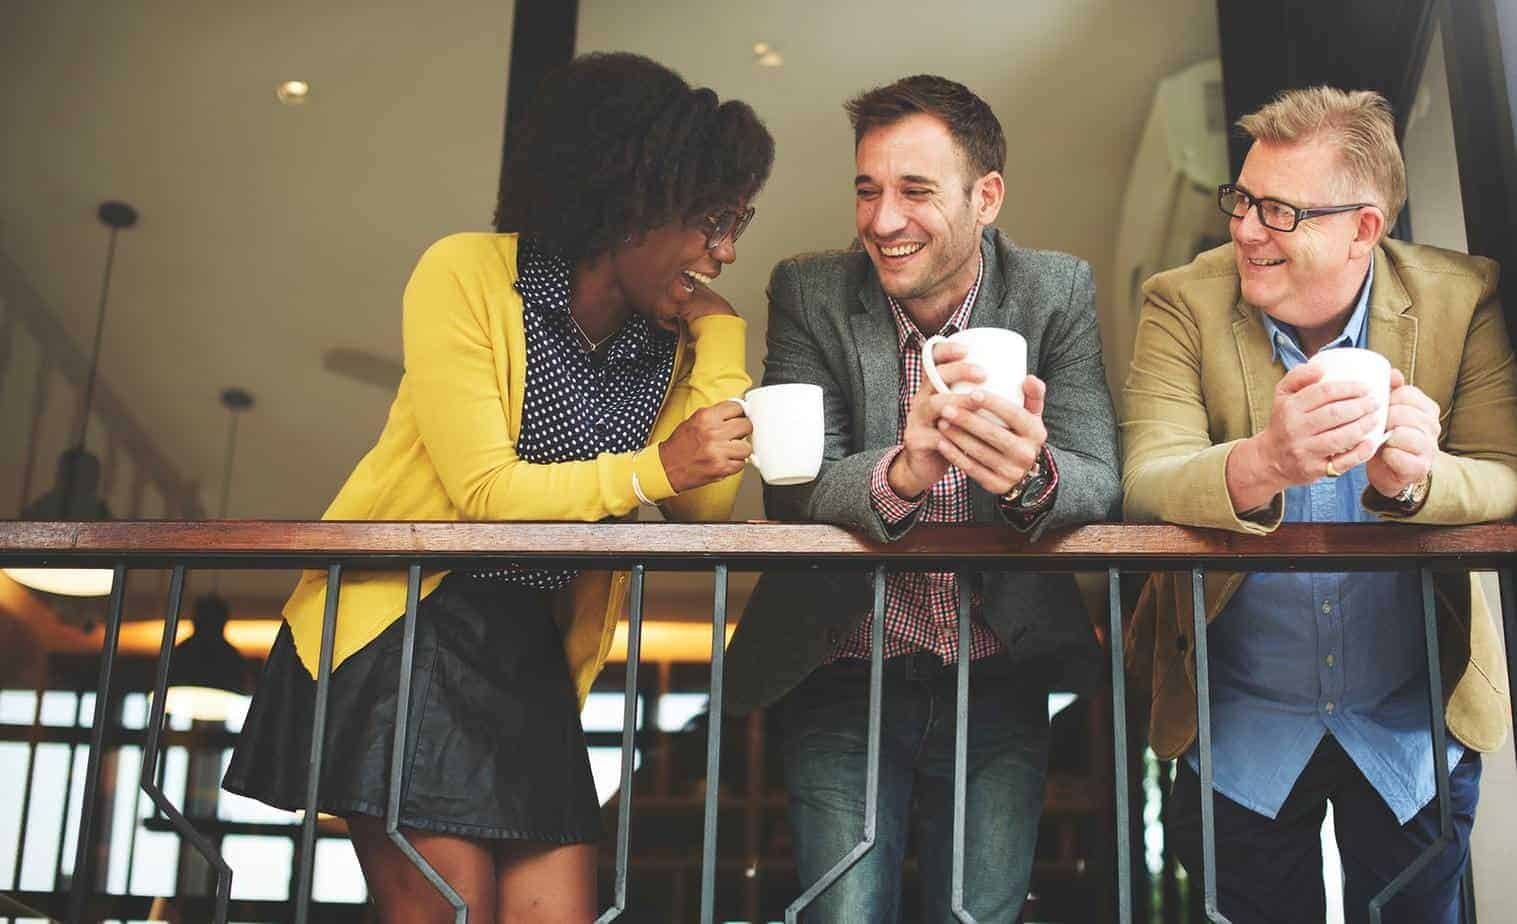 How To Be More Confident When Talking To People